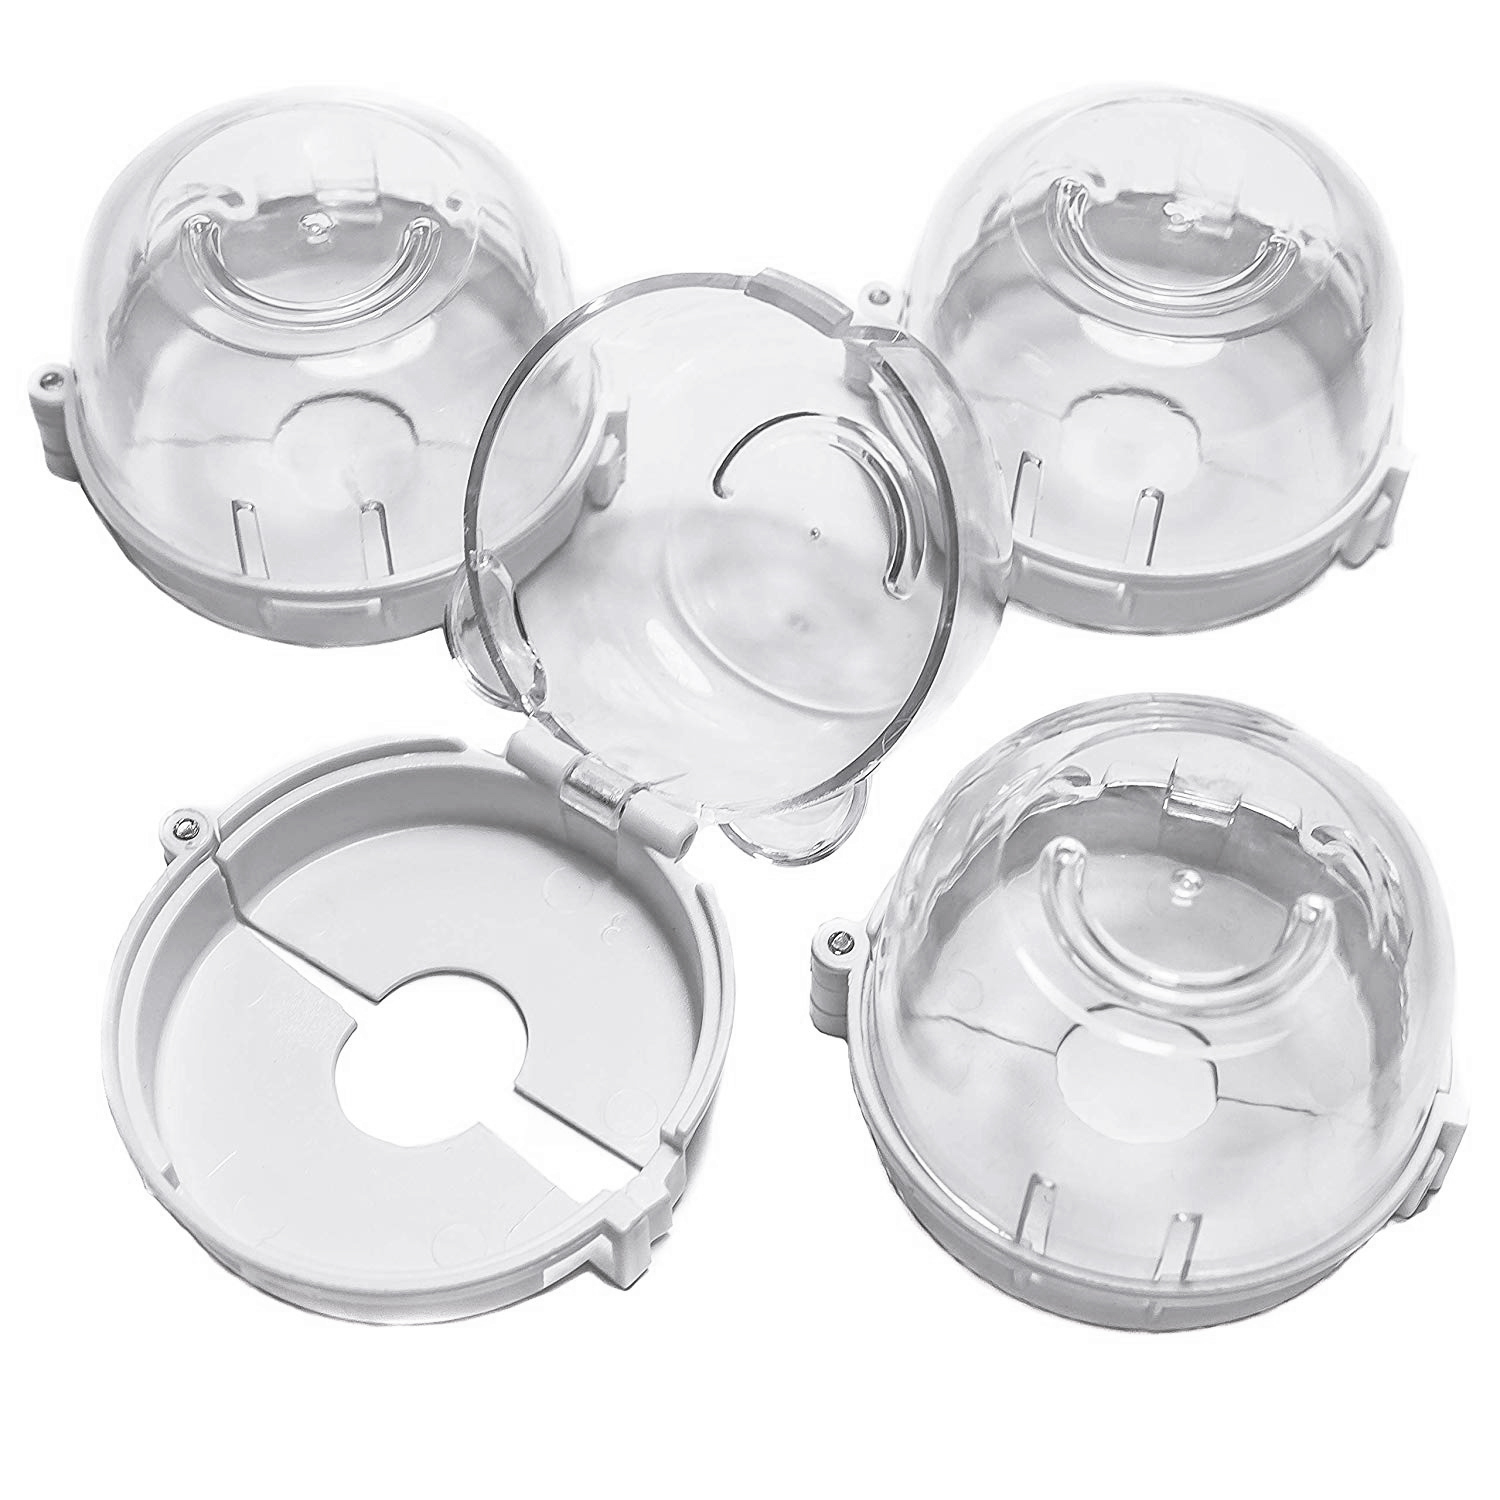 Clear Safety Oven Knobs Cover 4 Pack - Baby Proofing Protection Lock For Ovens/Stoves When Kids, Children, Toddler Around - Pr